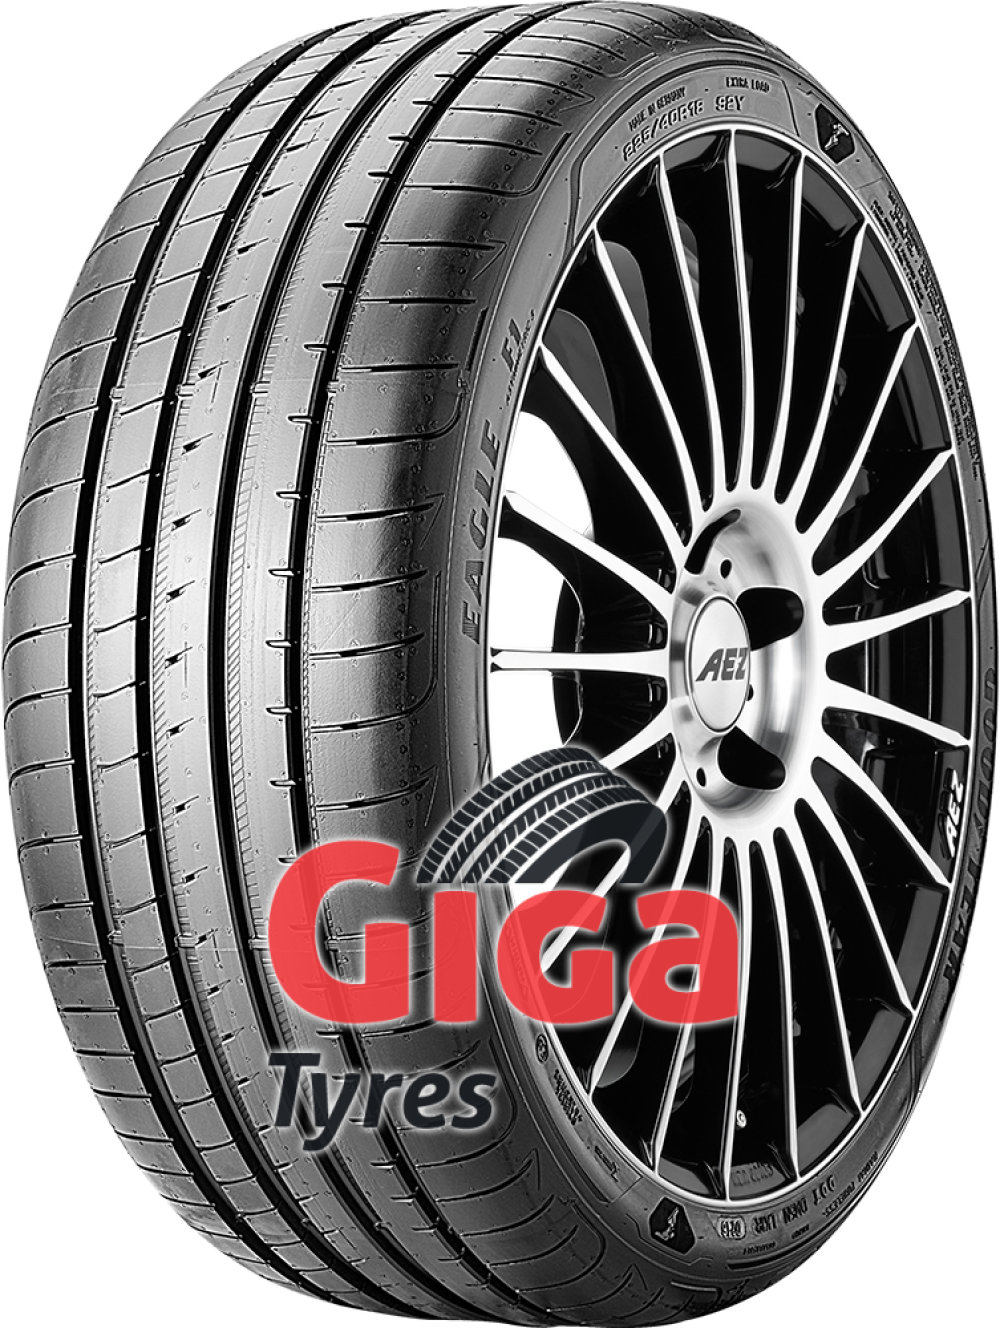 Goodyear Eagle F1 Asymmetric 3 ( 235/50 R18 101Y XL with rim protection (MFS) )